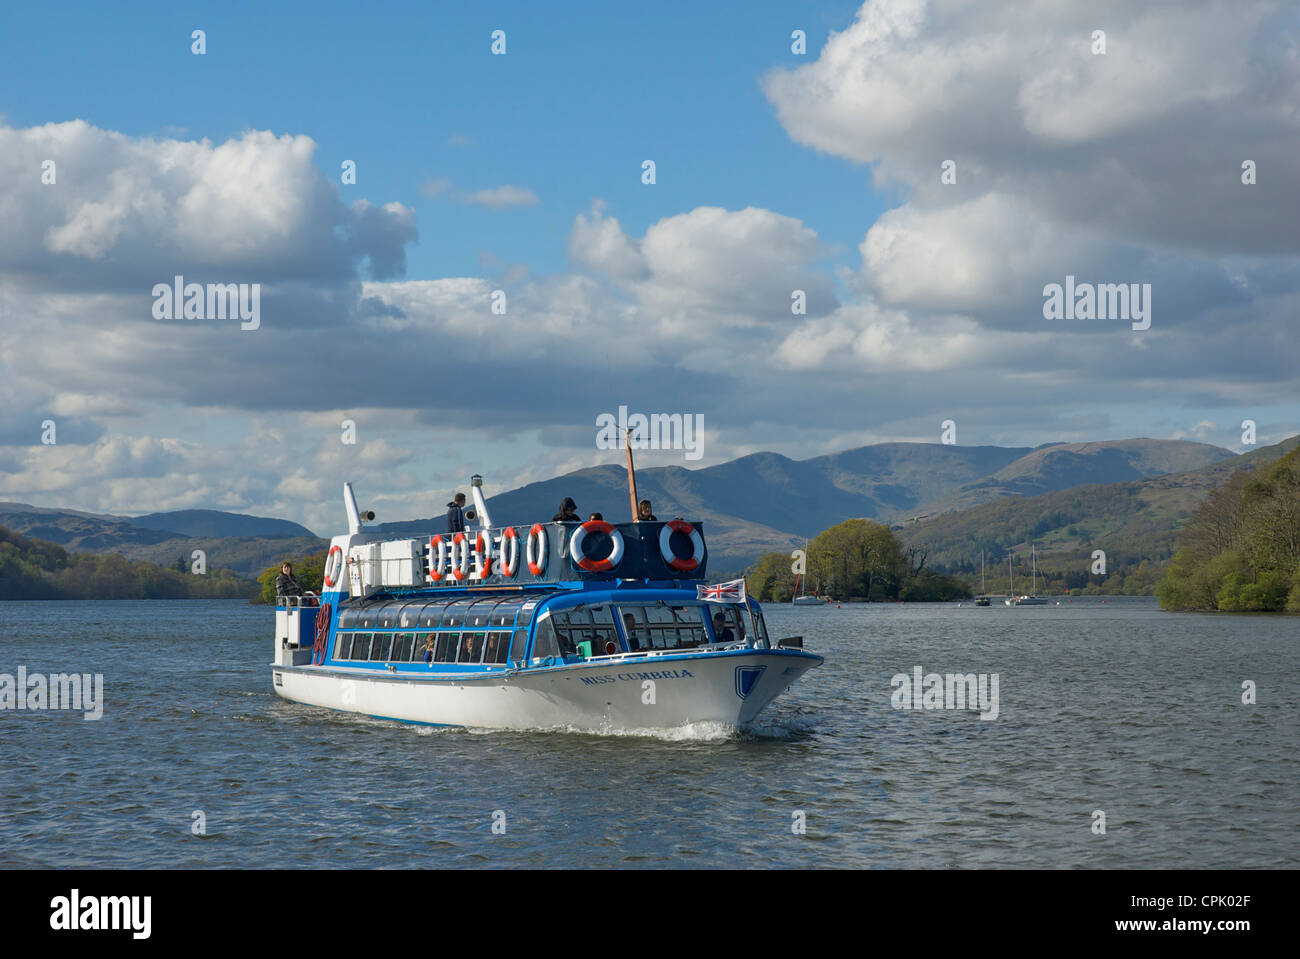 Miss Cumbria, one of the launches operated by Windermere Lake Cruises, Lake District National Park, Cumbria, England - Stock Image